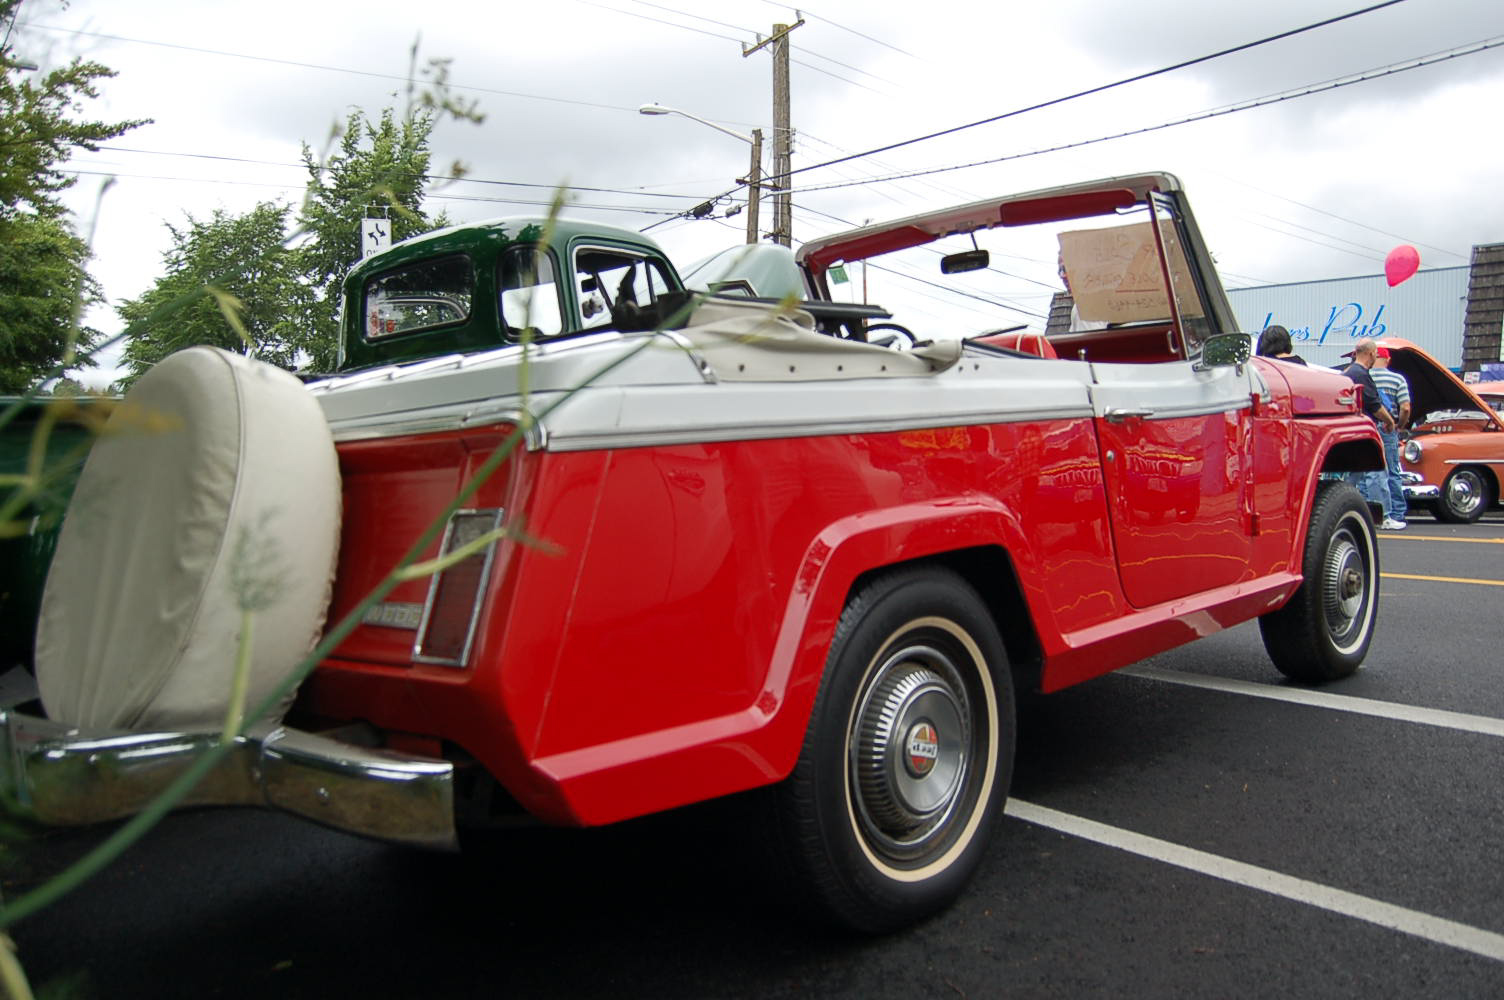 Factory stock champagne white 432 and president red 398 paint job on a 1969 1969 jeep jeepster commando